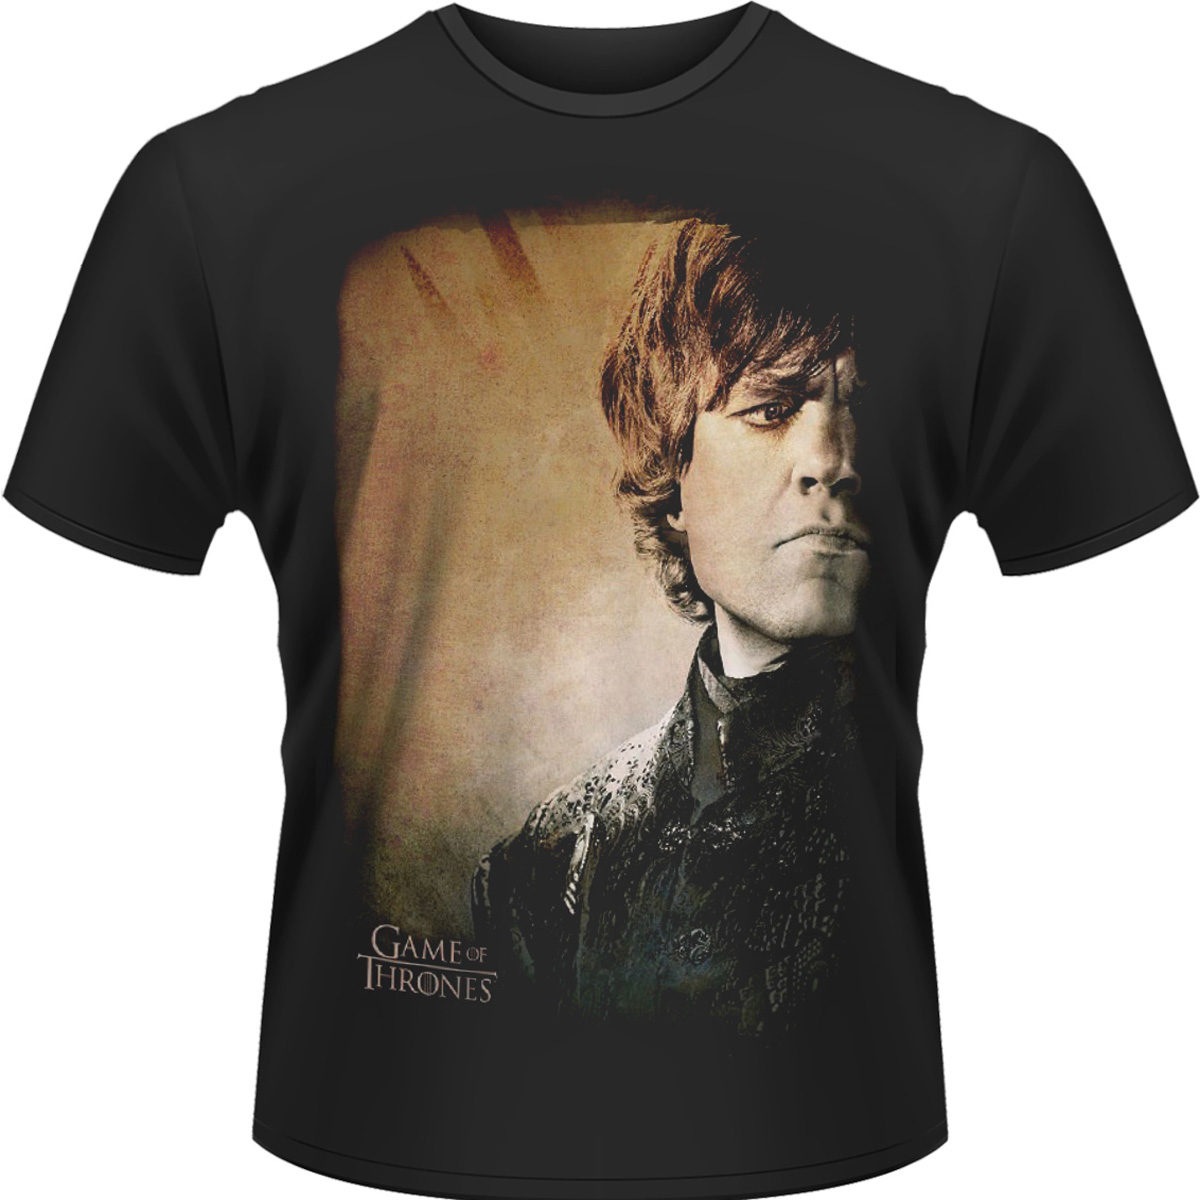 Tyrion Lannister - T-shirt =game of Thrones= - Merchandise - PHDM - 0803341452558 - 6/10-2014